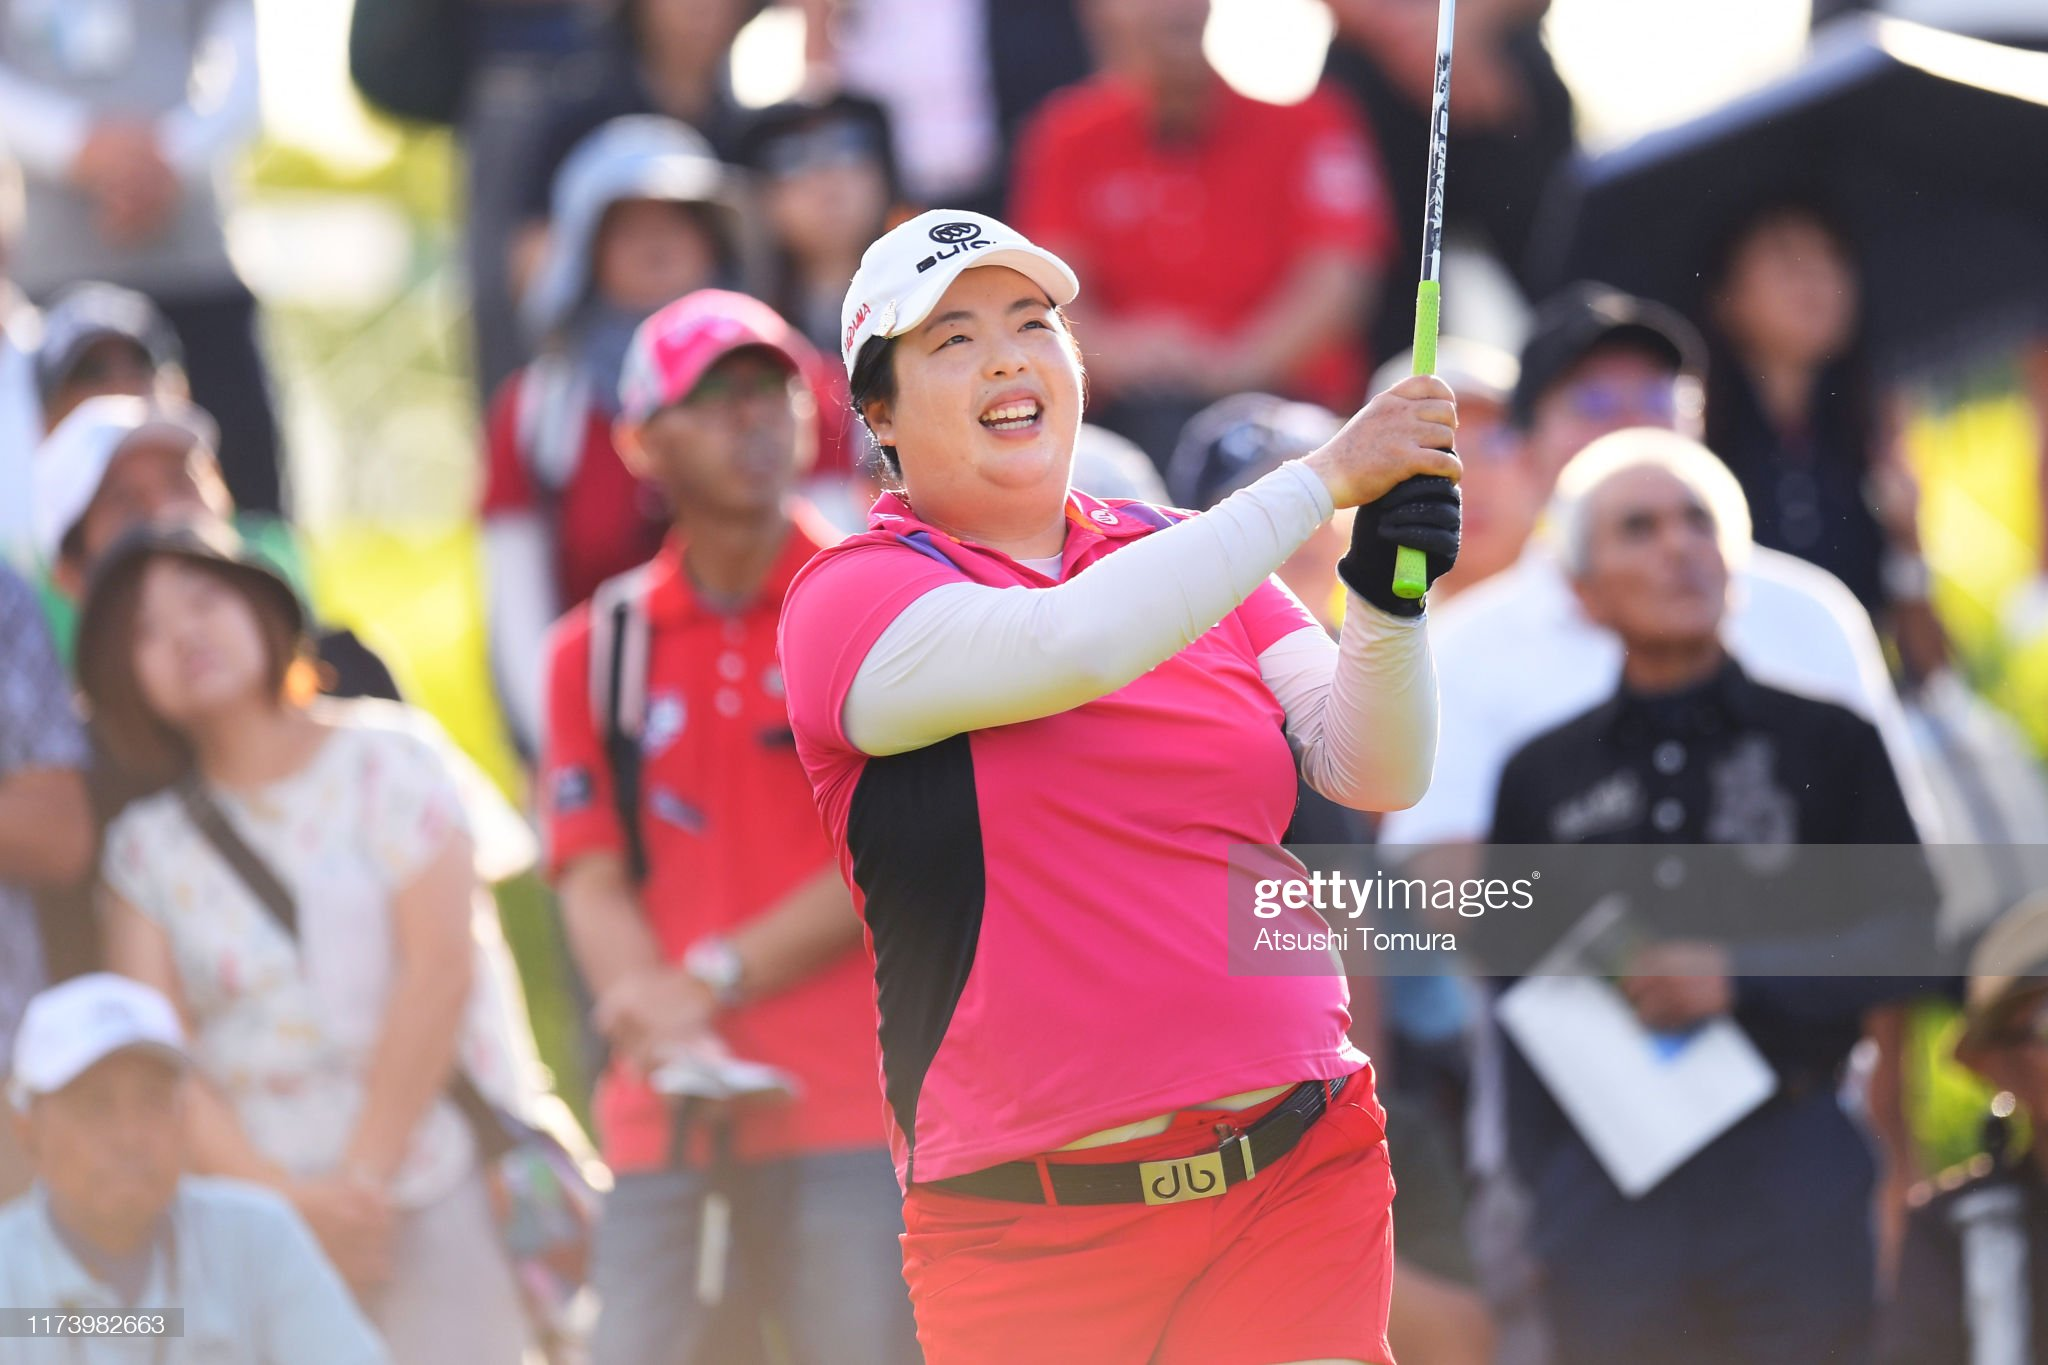 https://media.gettyimages.com/photos/shanshan-feng-of-china-reacts-after-her-tee-shot-on-the-10th-hole-picture-id1173982663?s=2048x2048